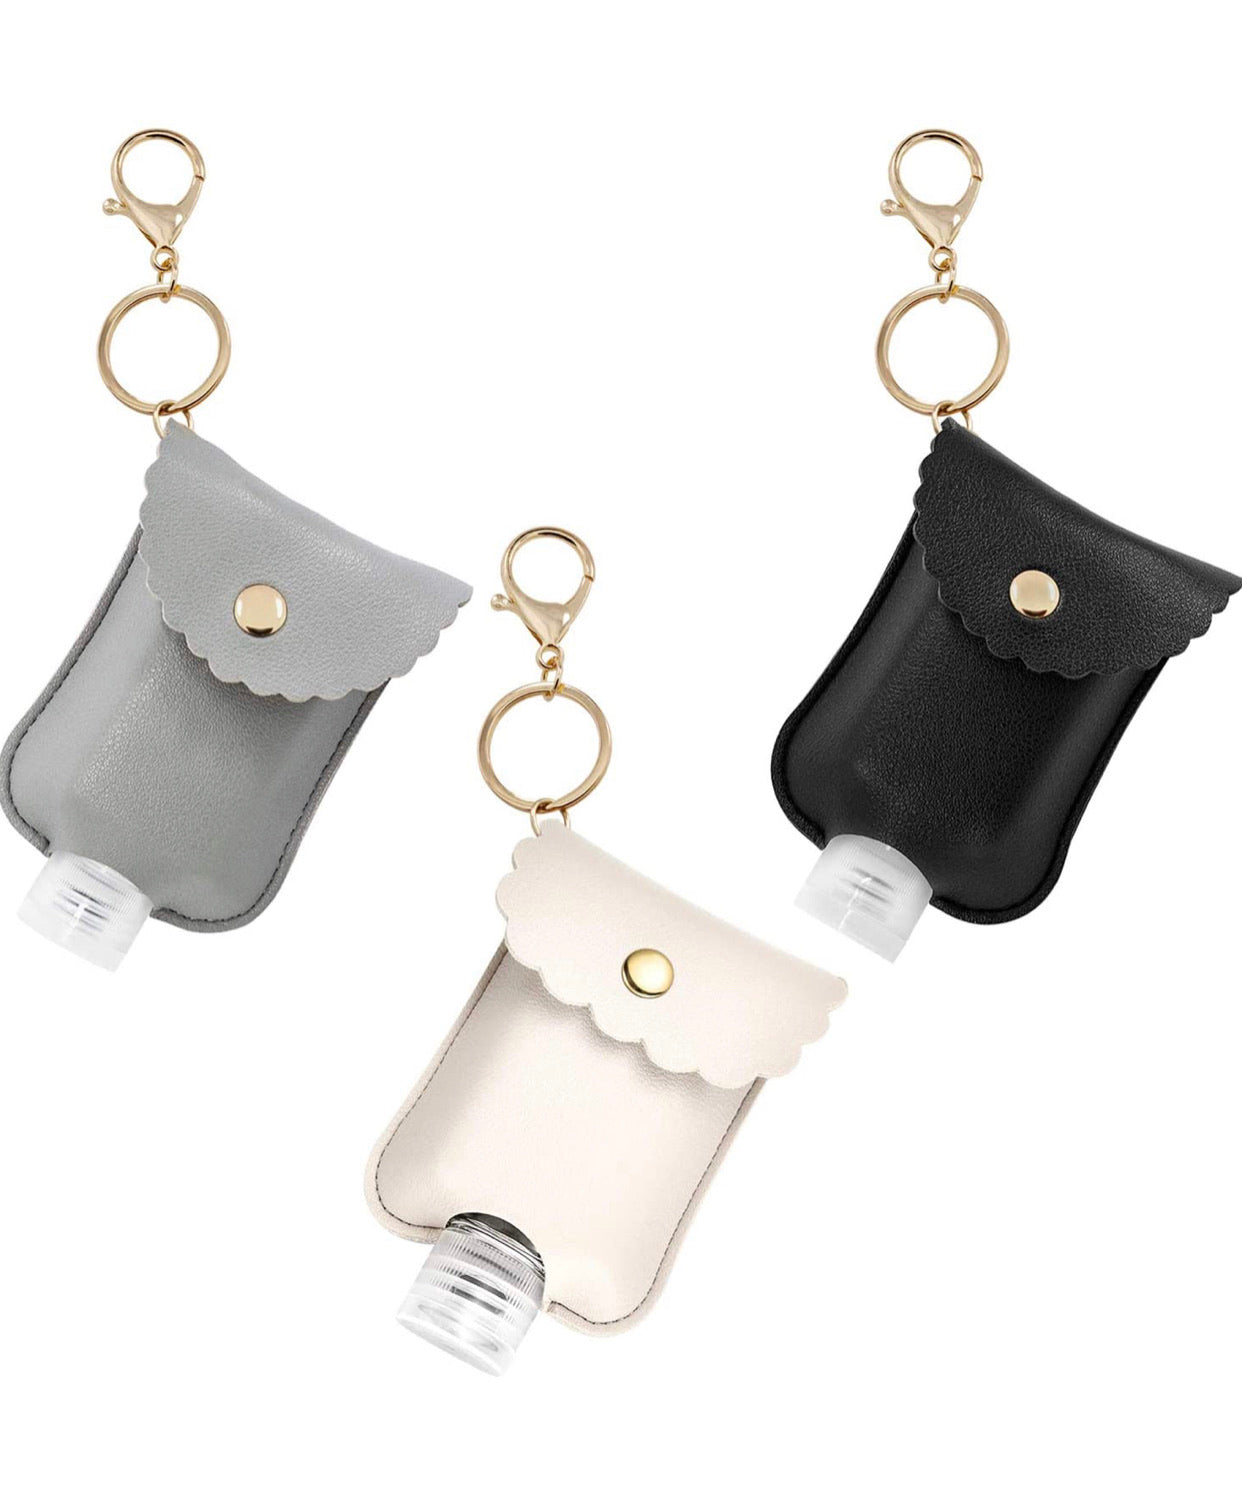 Keychain Leather Sanitizer Holder - Gold Clip